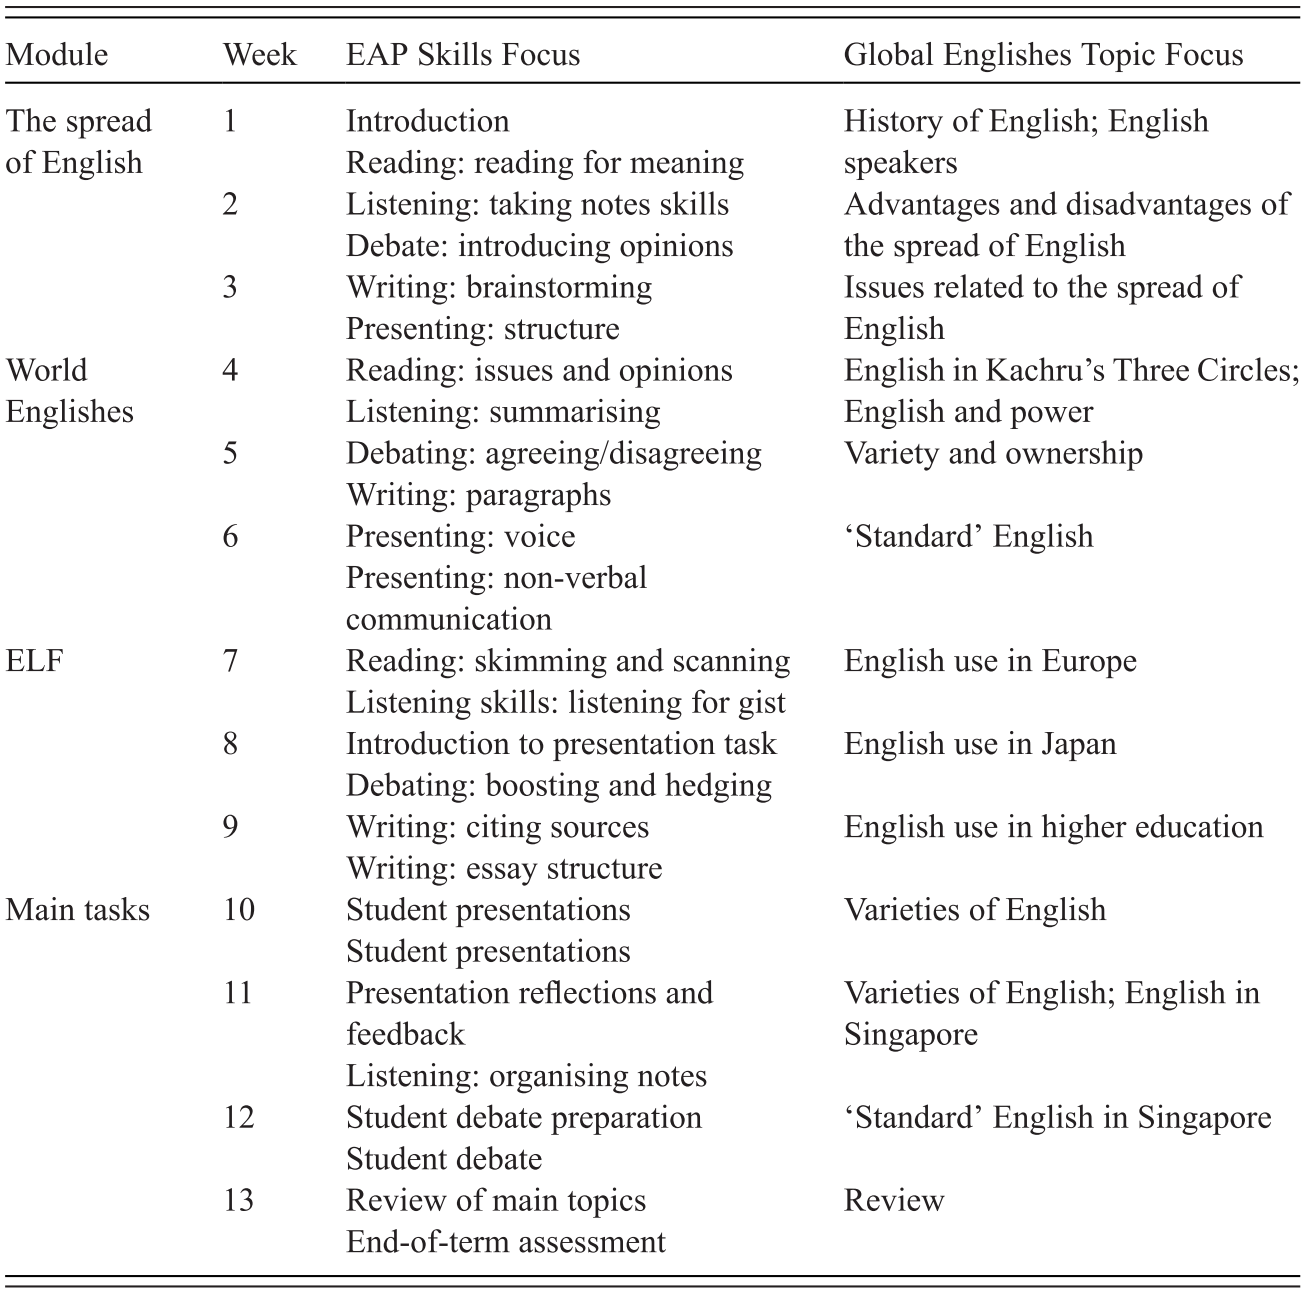 The TESOL Curriculum and GELT (Chapter 2) - Global Englishes